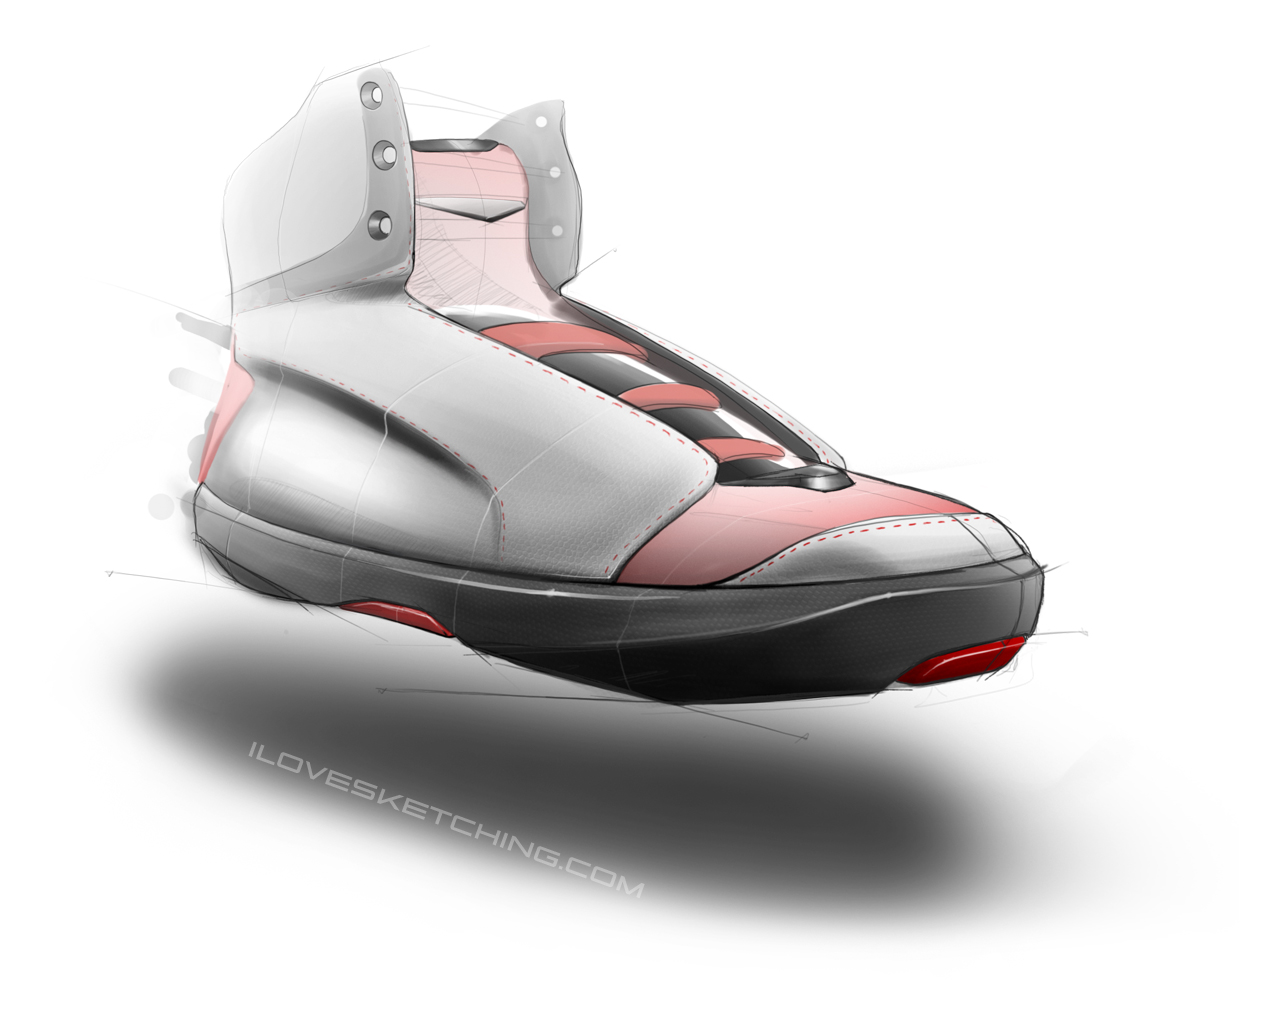 random shoe design sketch 2 photoshop rendering by ecco666